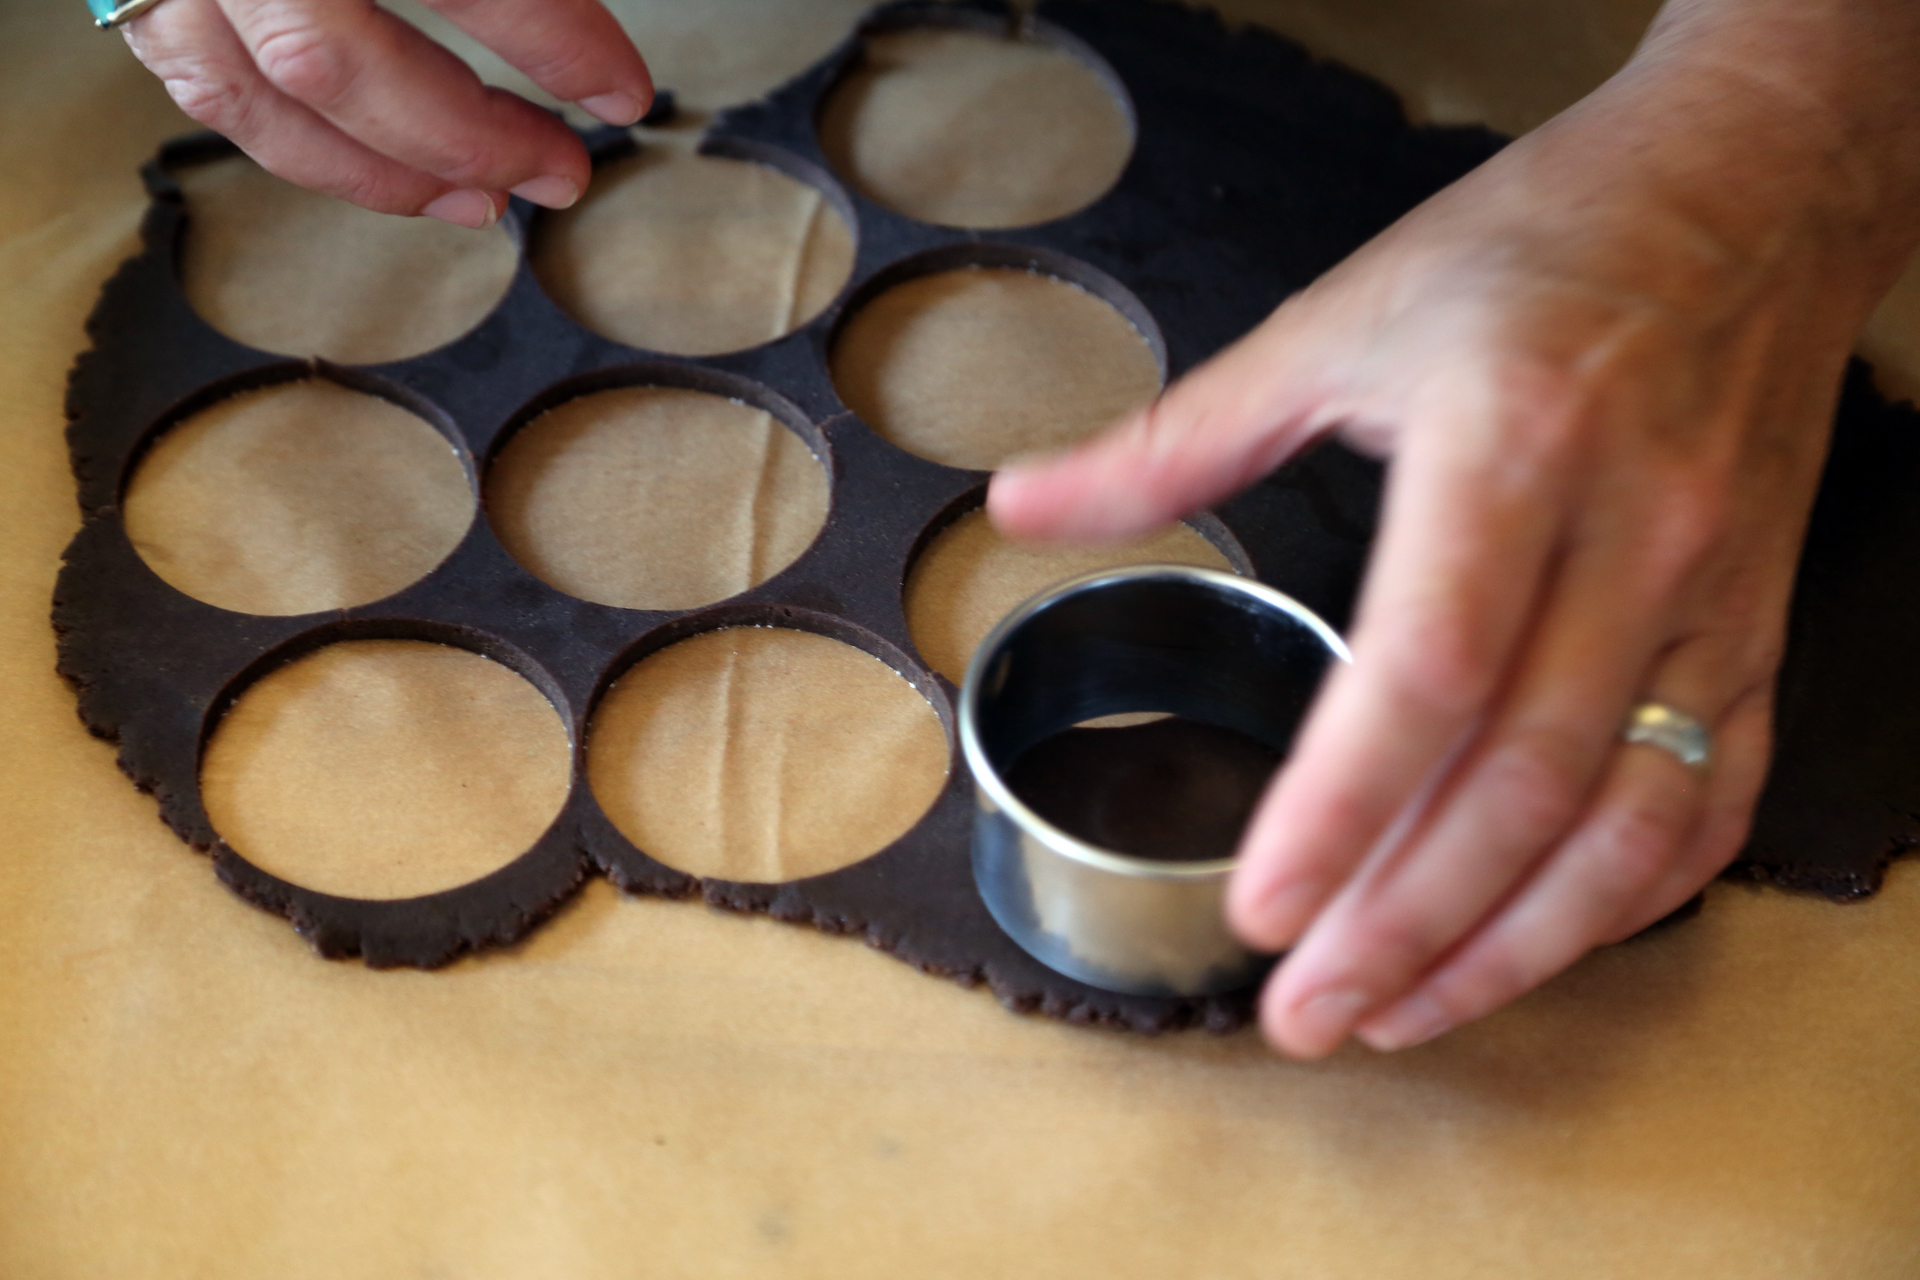 Using a round 2 1/4-inch cookie cutter, cut out as many rounds as possible.